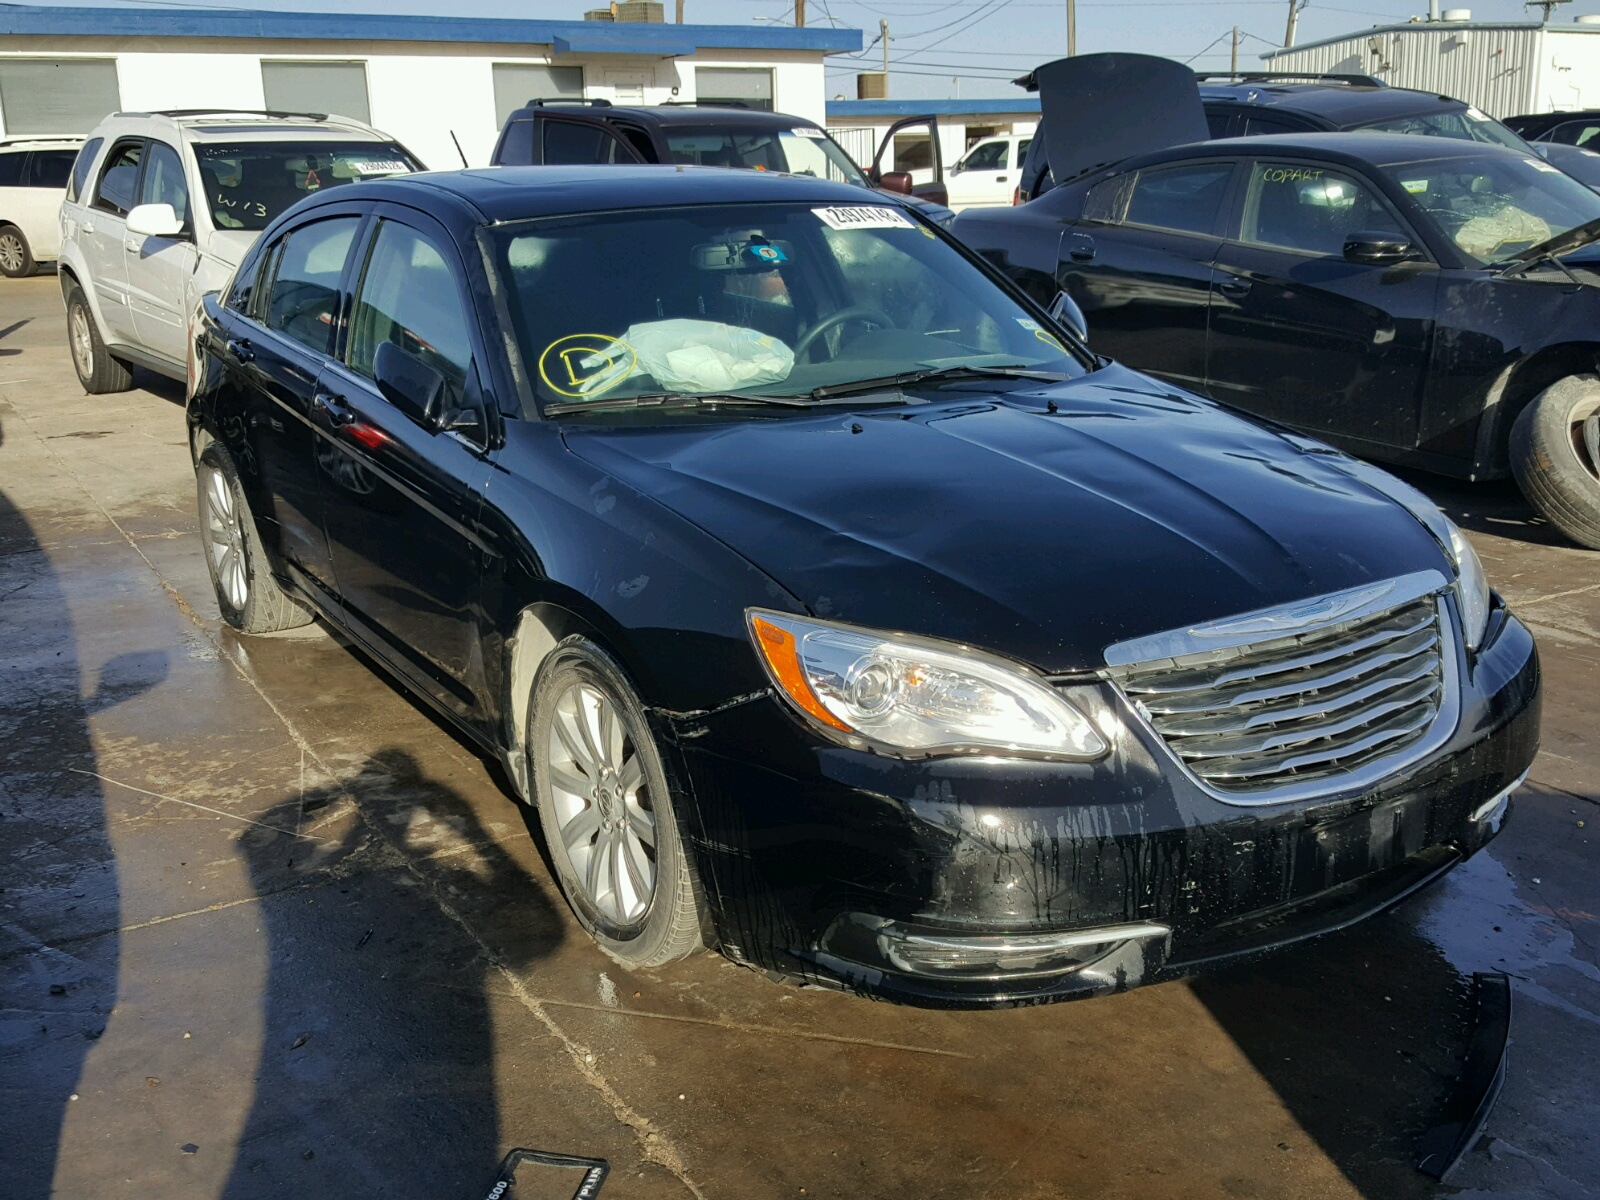 tx t online carfinder on auto vehicle view lot title en sale dallas auctions copart pacifica in salvage left teal chrysler